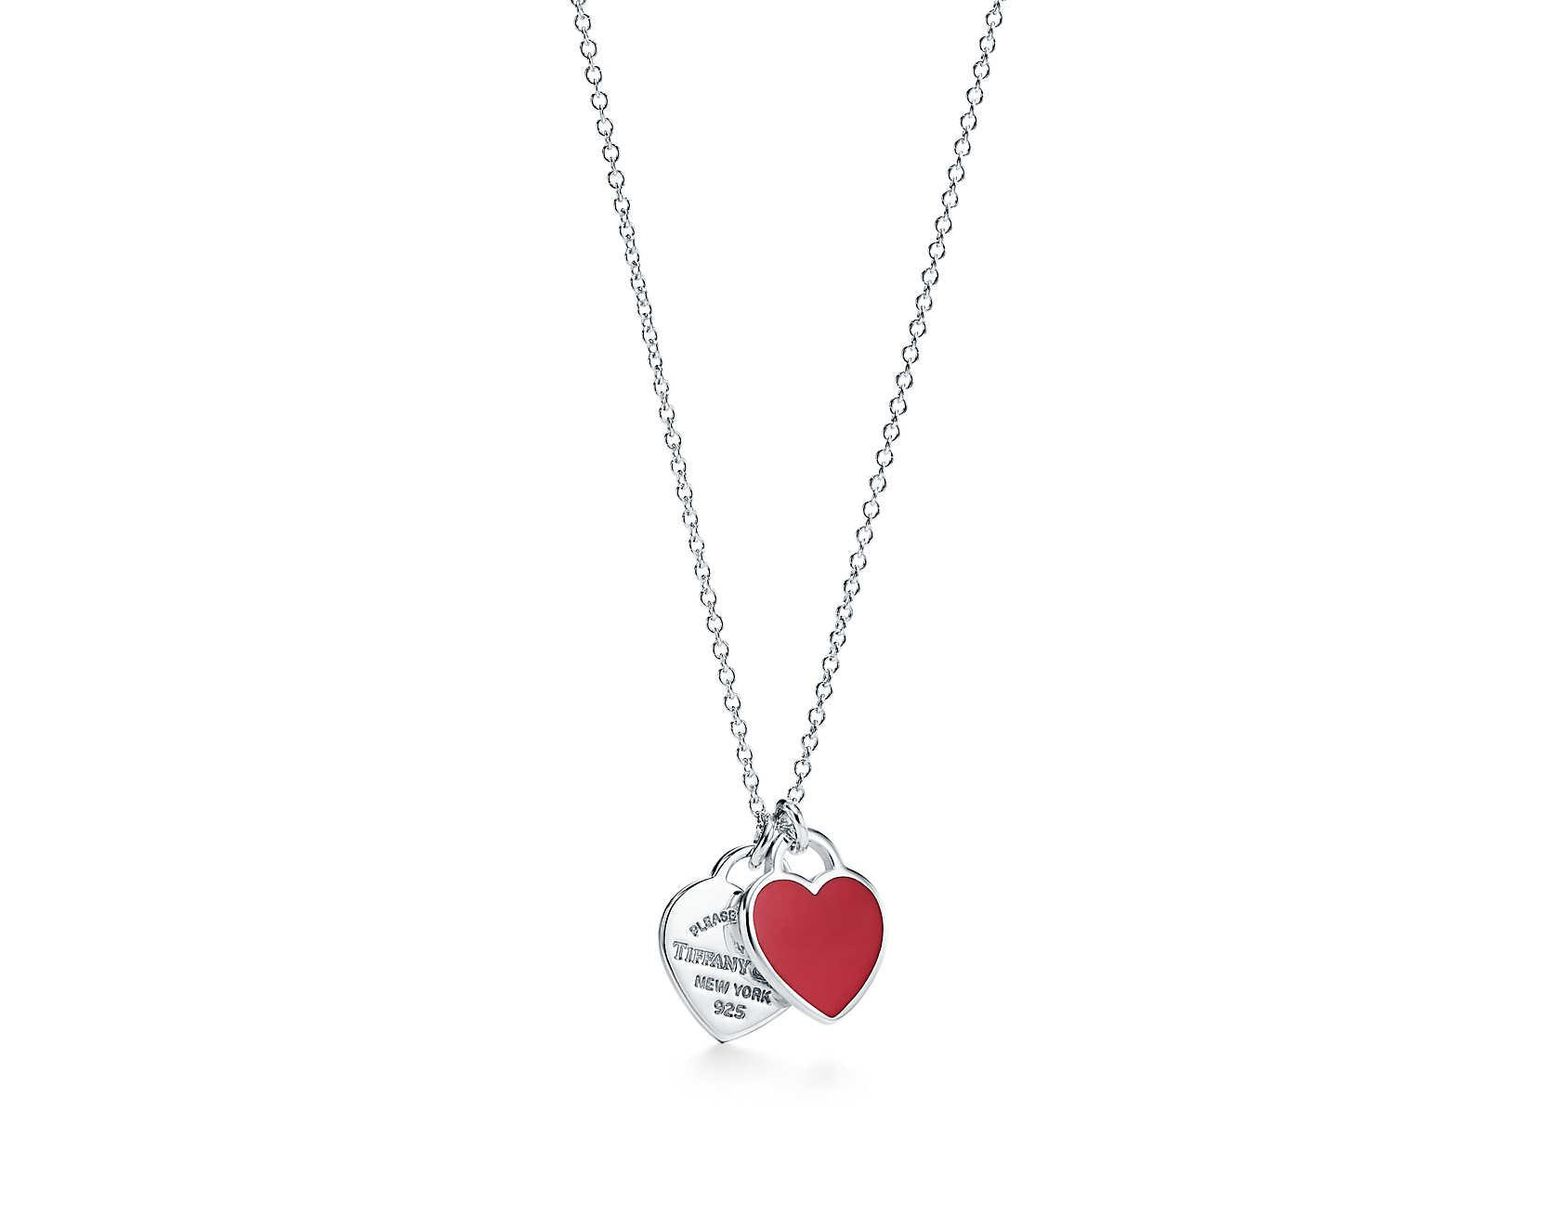 fae367a32 Tiffany & Co. Return To Tiffanytm Mini Double Heart Tag Pendant In Silver  With Enamel Finish in Metallic - Lyst